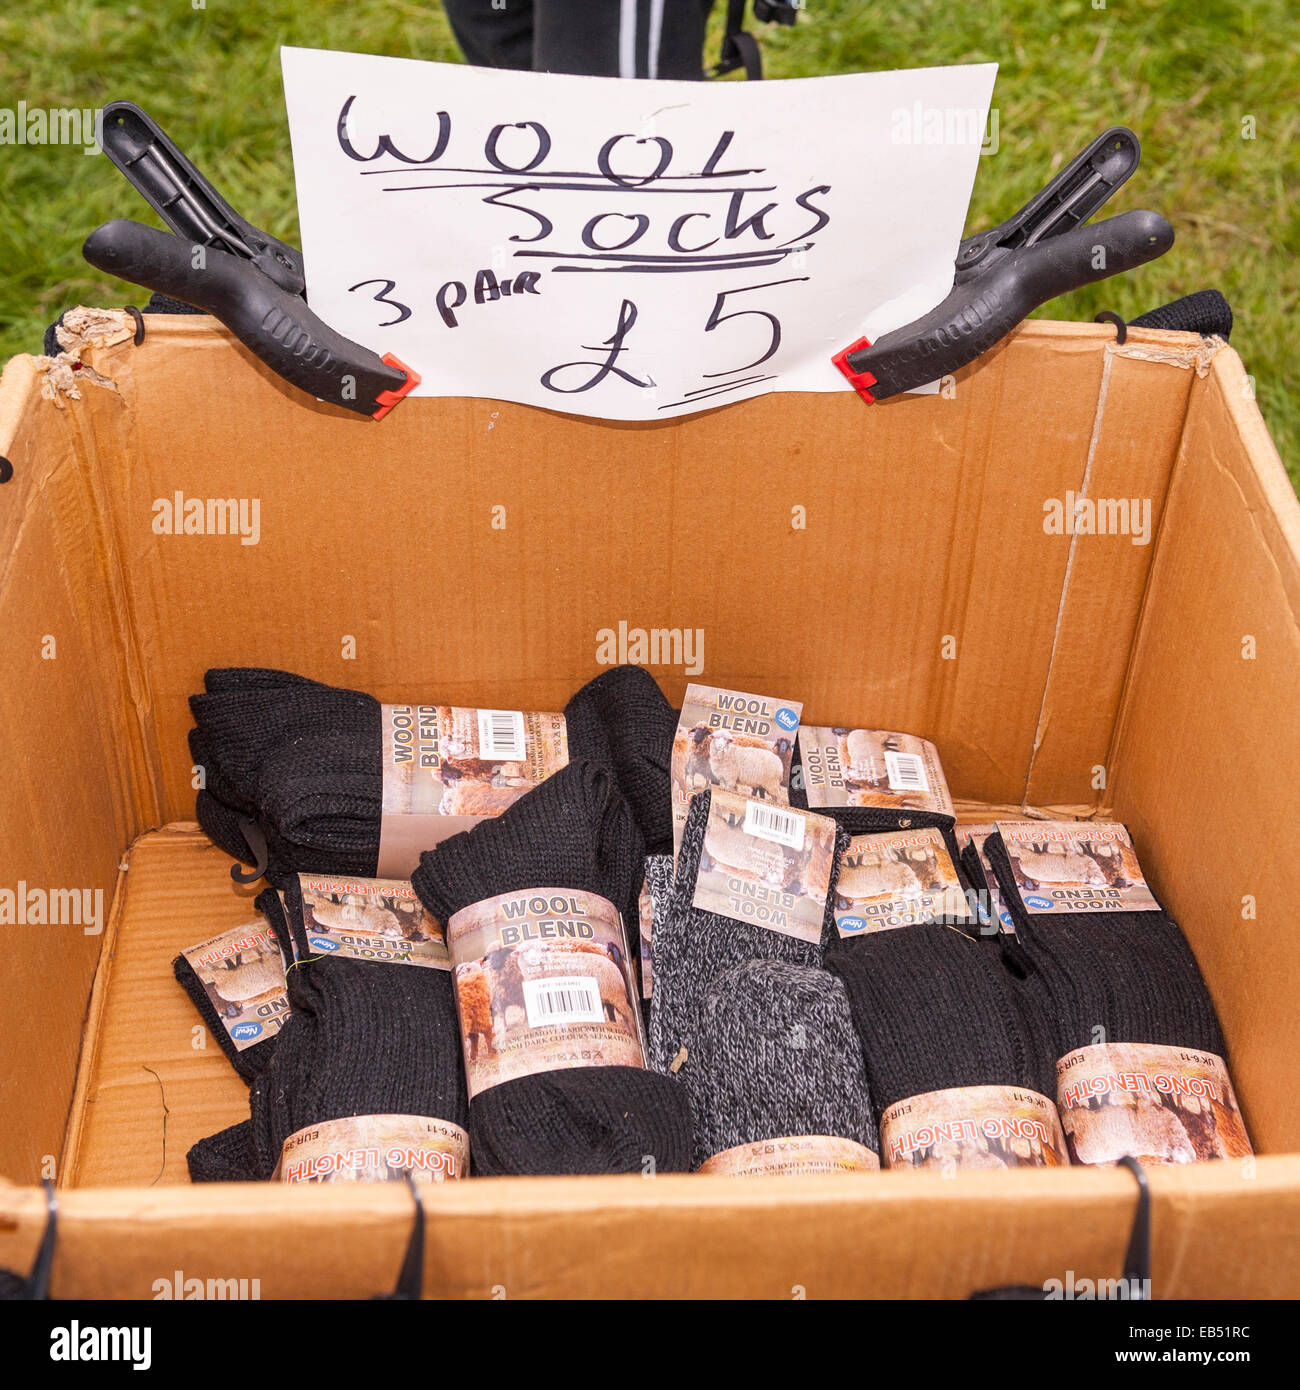 Wool socks for sale - Stock Image